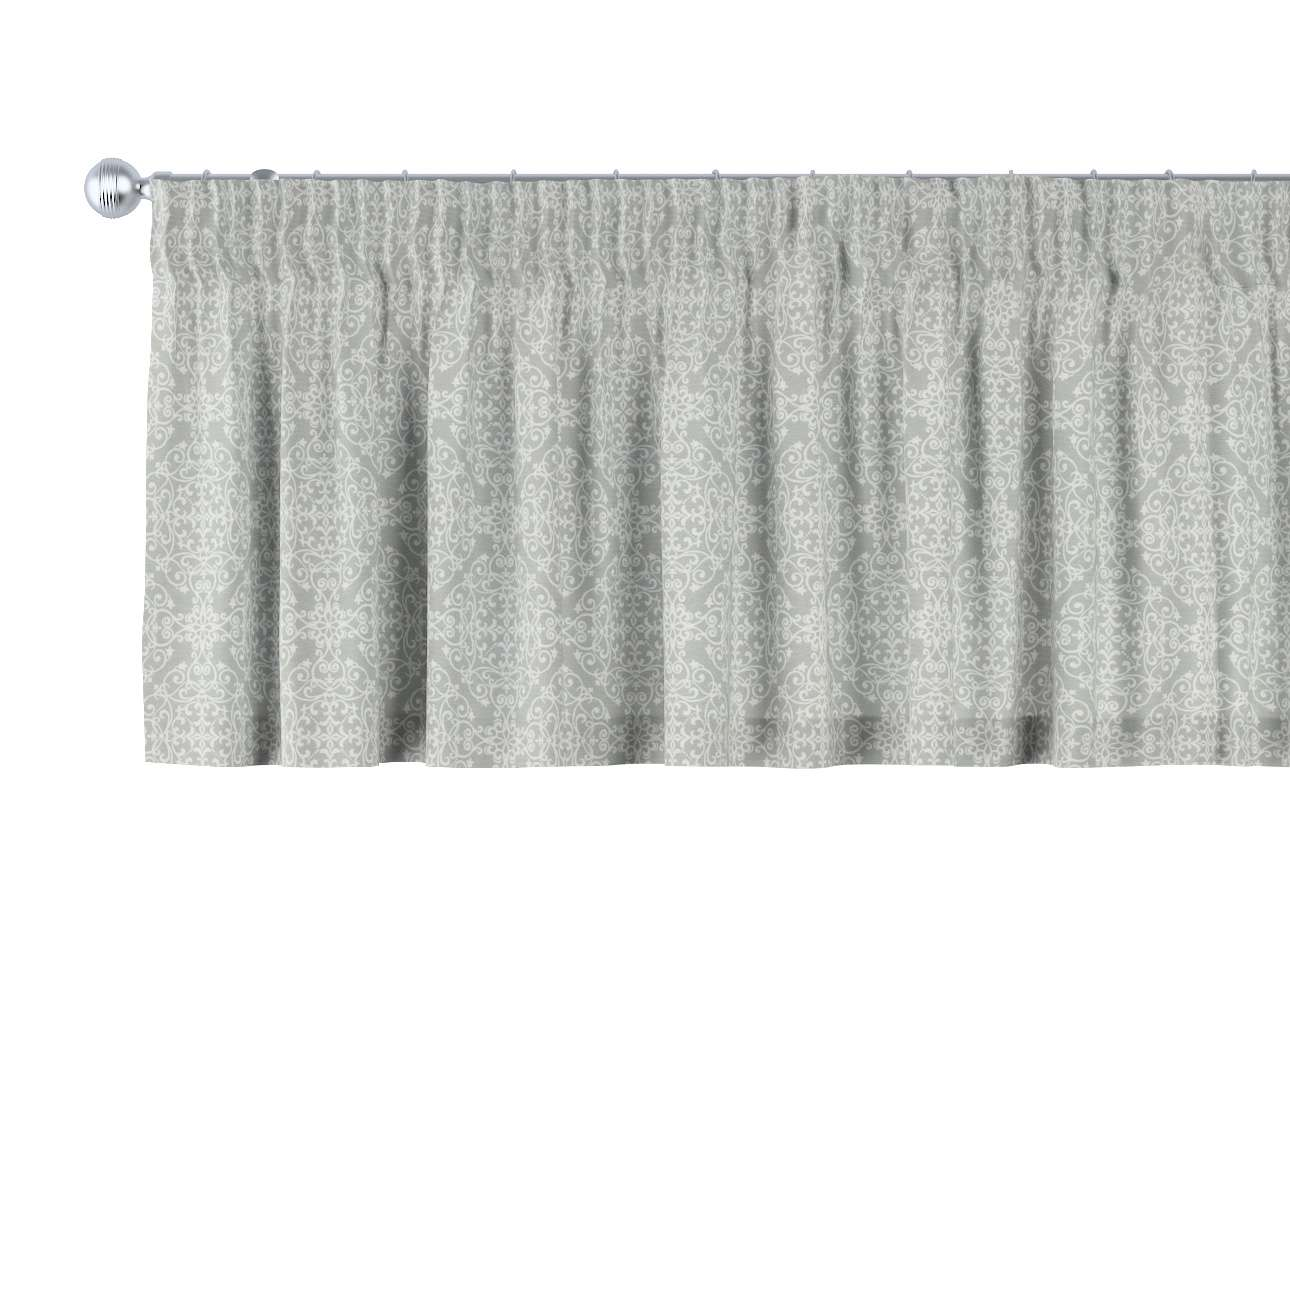 Pencil pleat pelmet 130 x 40 cm (51 x 16 inch) in collection Flowers, fabric: 140-38